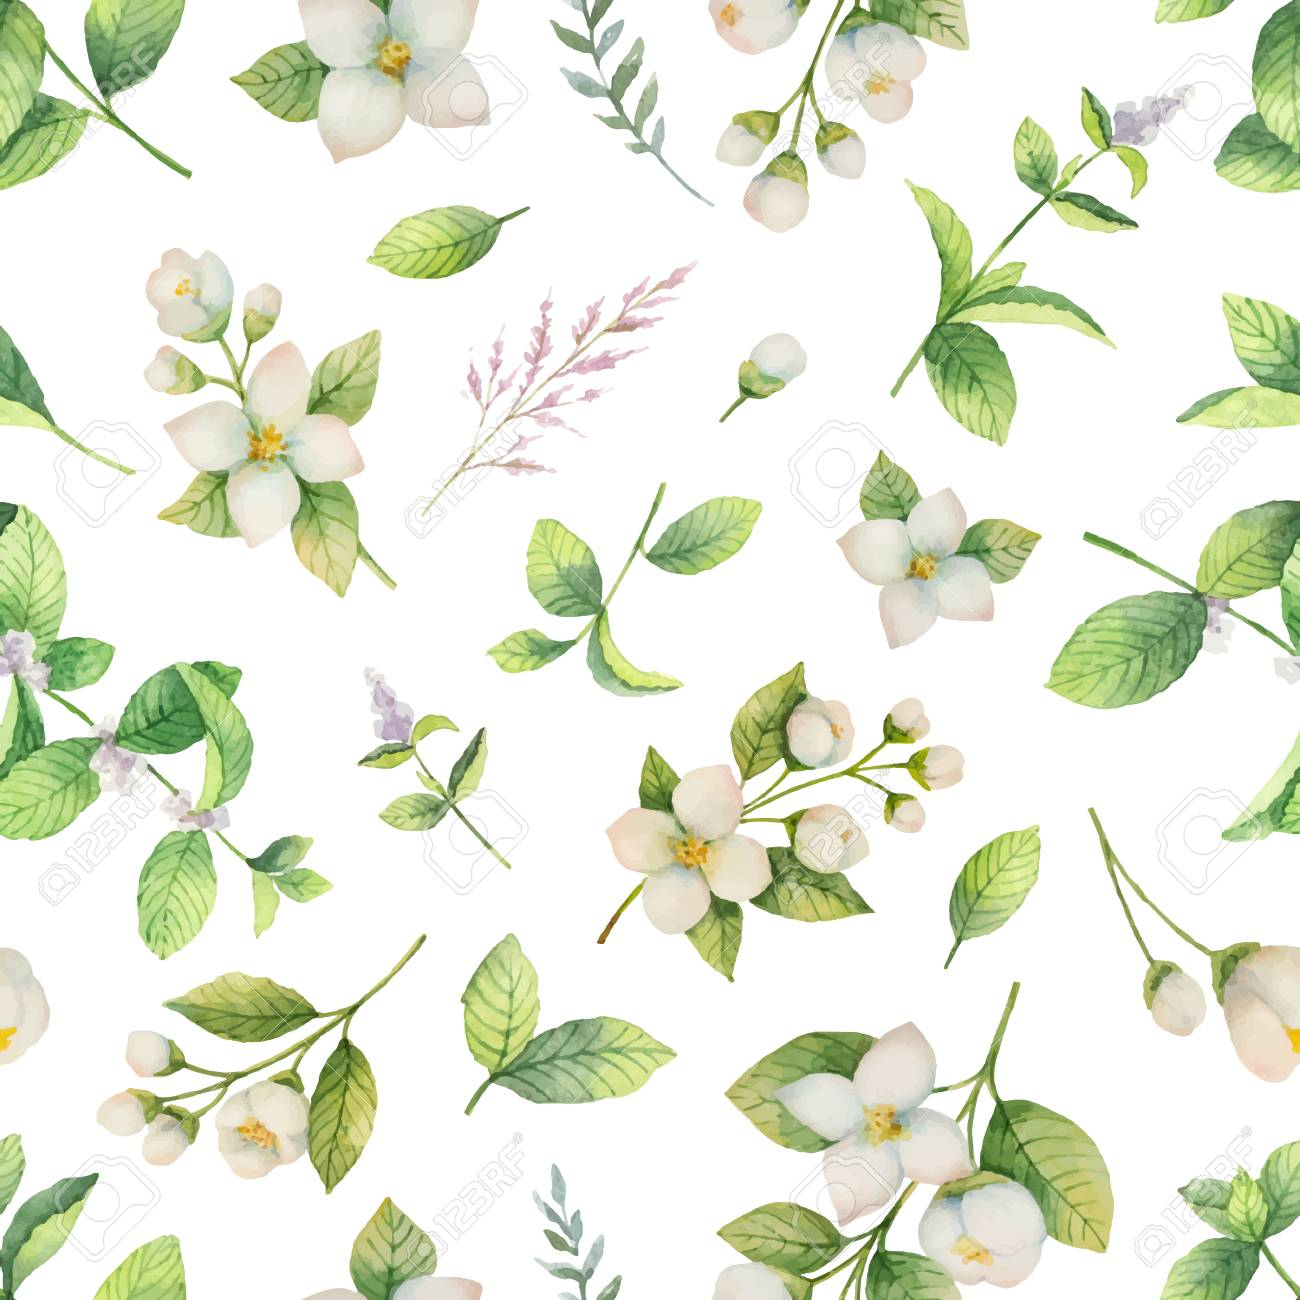 Watercolor vector seamless pattern of flowers and branches Jasmine isolated on a white background. - 90666049